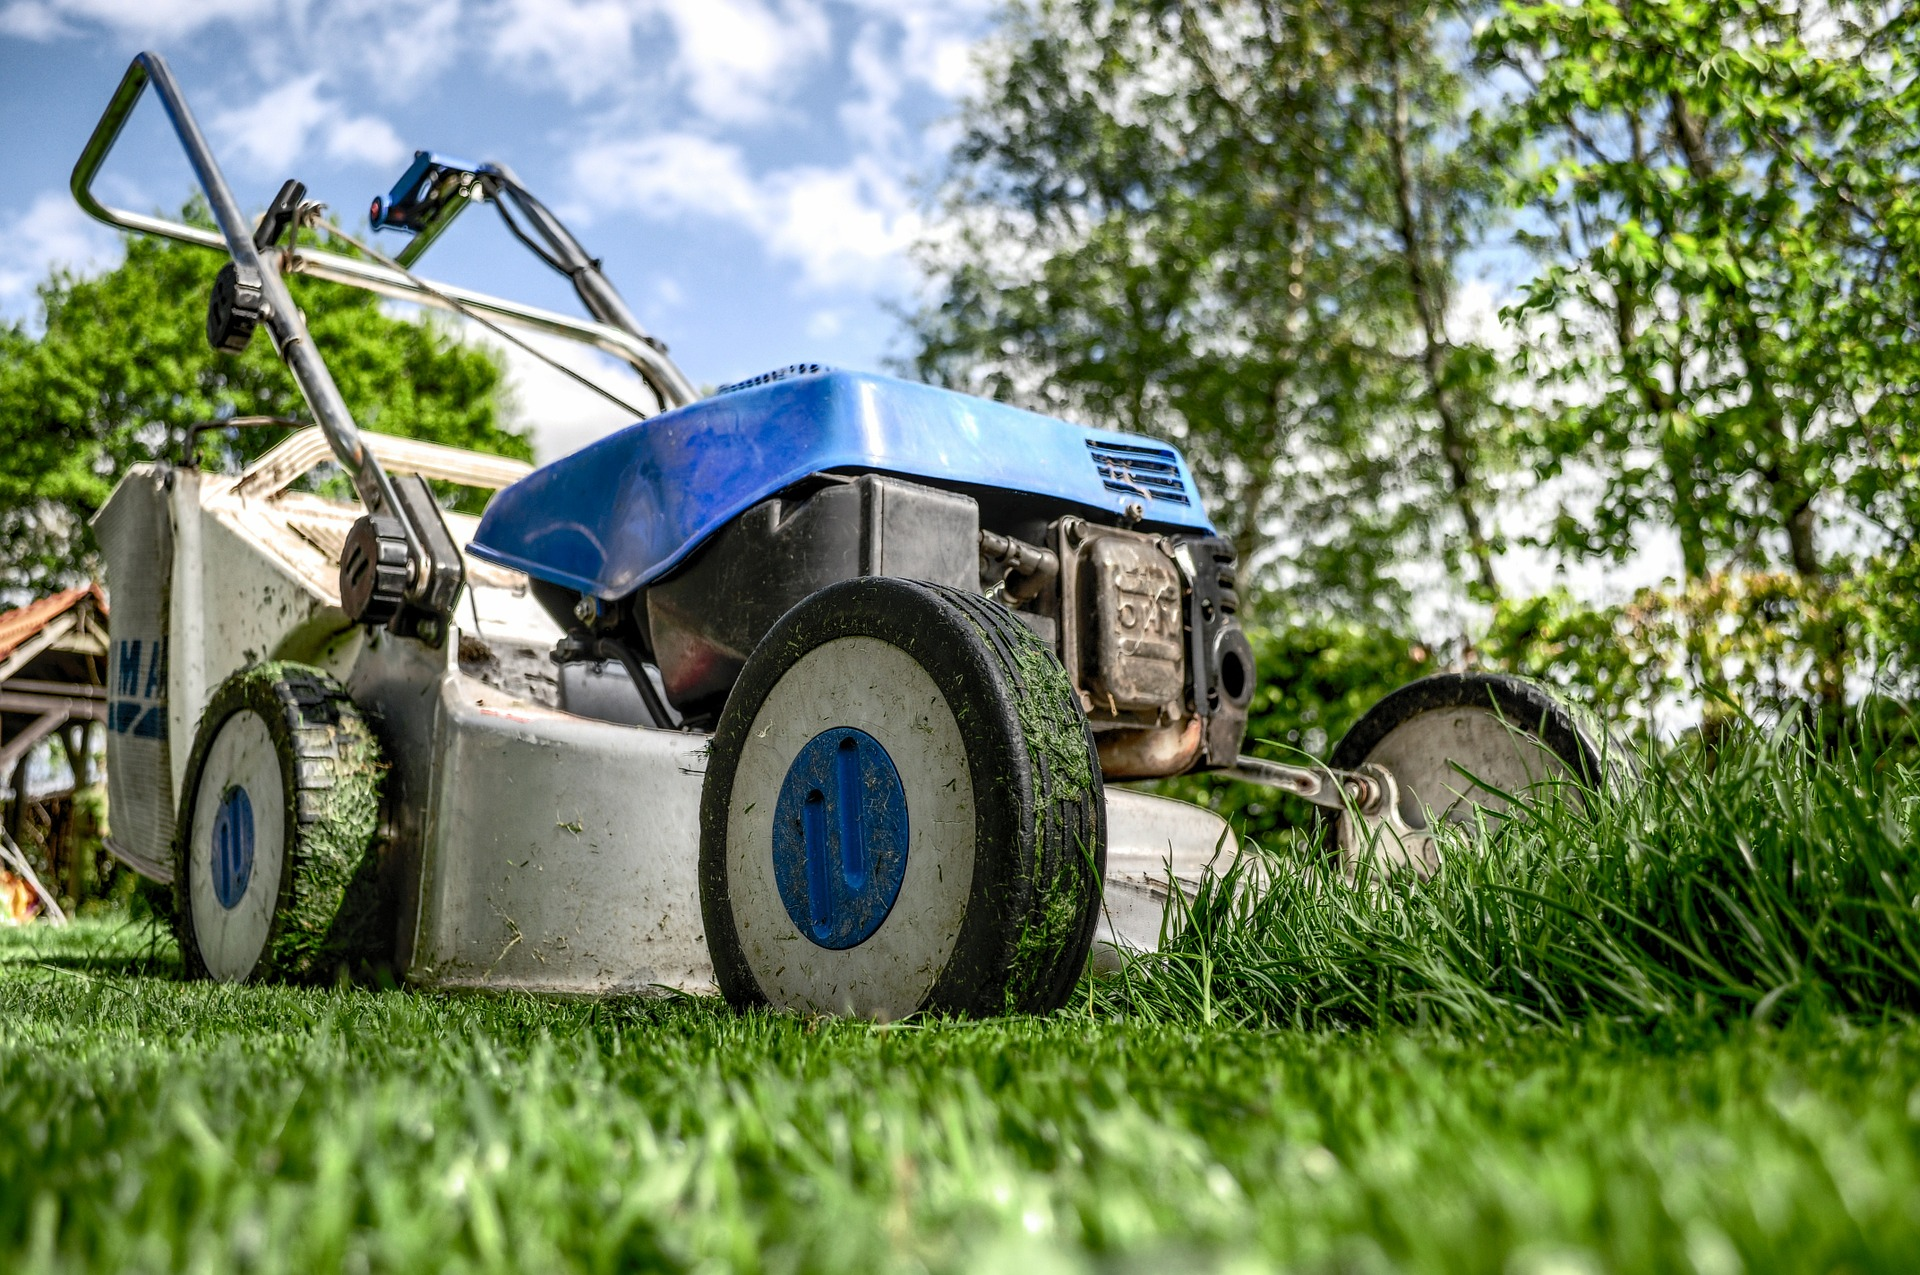 Lawn & Garden Equipment & Supplies - Rental